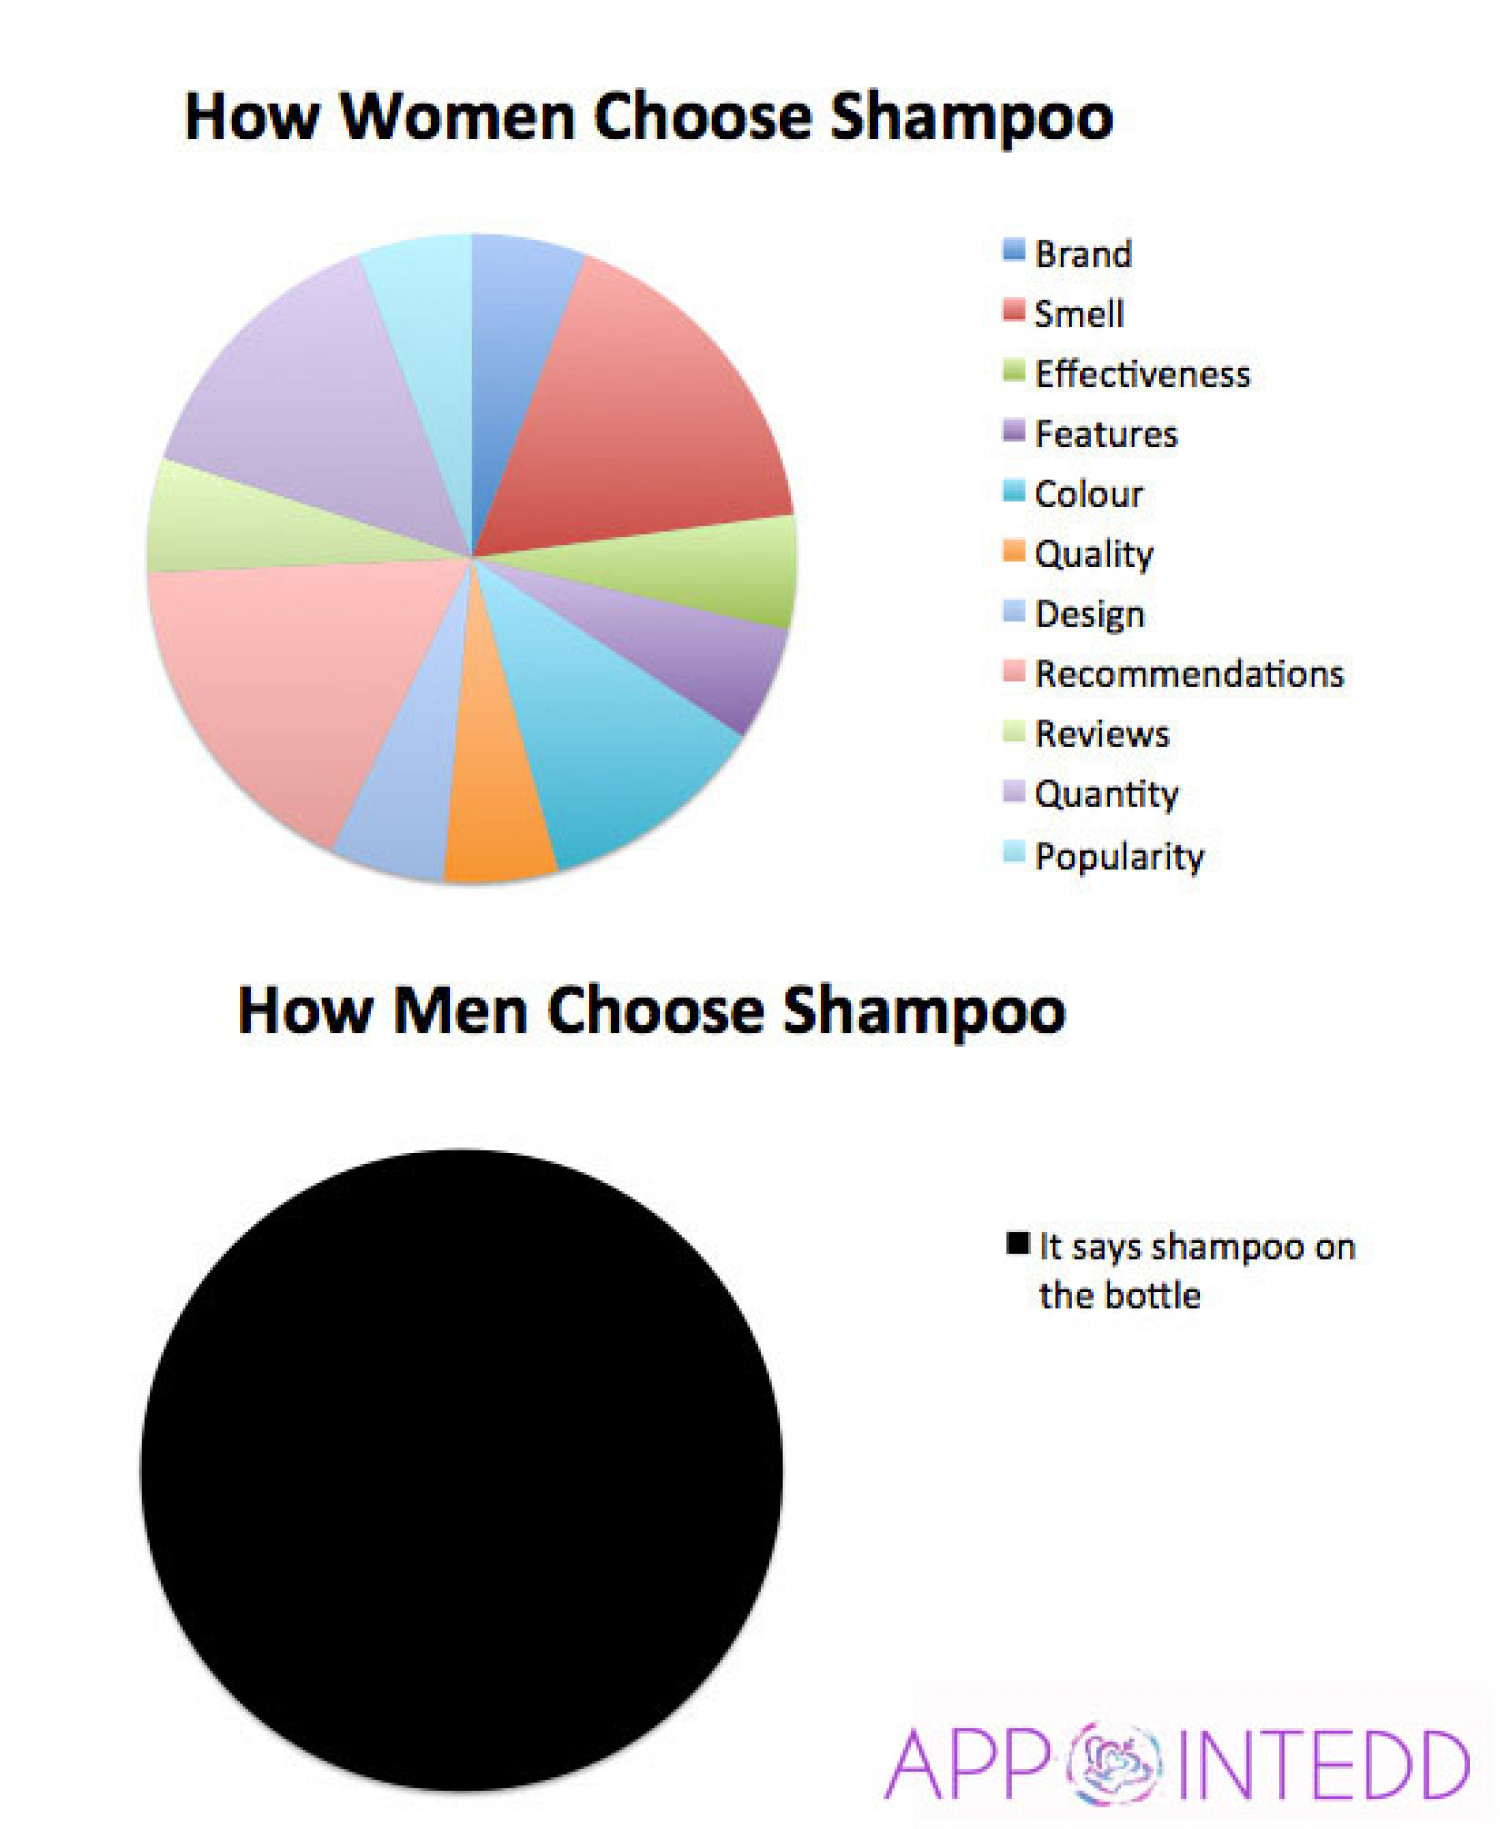 How Men and Women Choose Shampoo Infographic